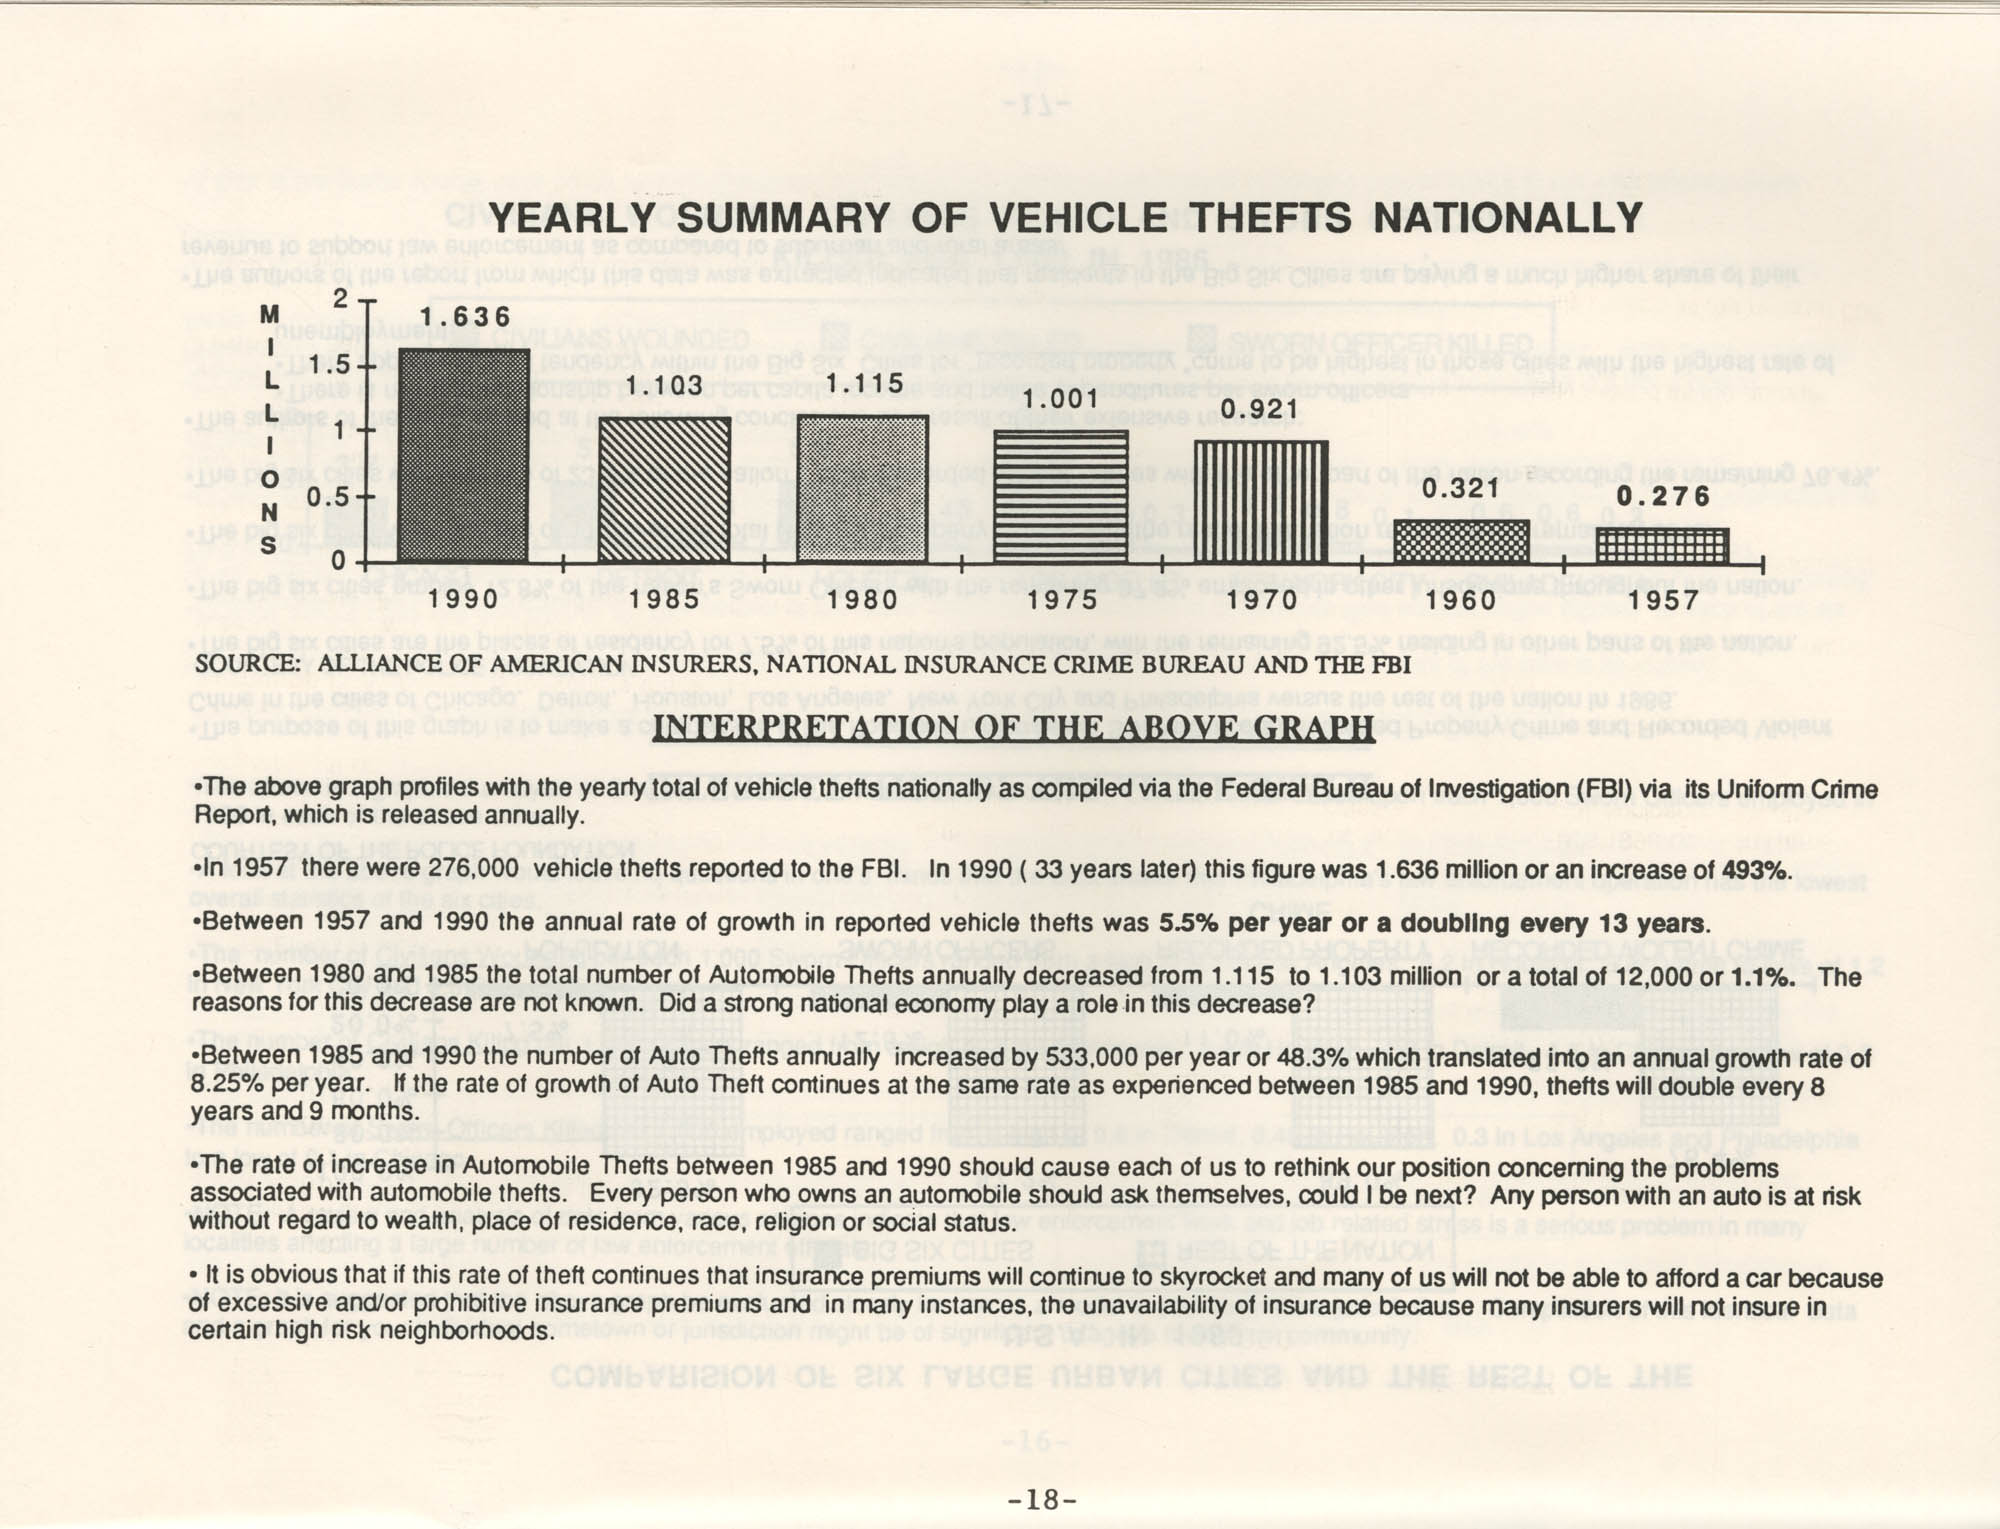 Crime and Criminal Activities in the U.S.A., NAACP National Board of Directors, Page 18